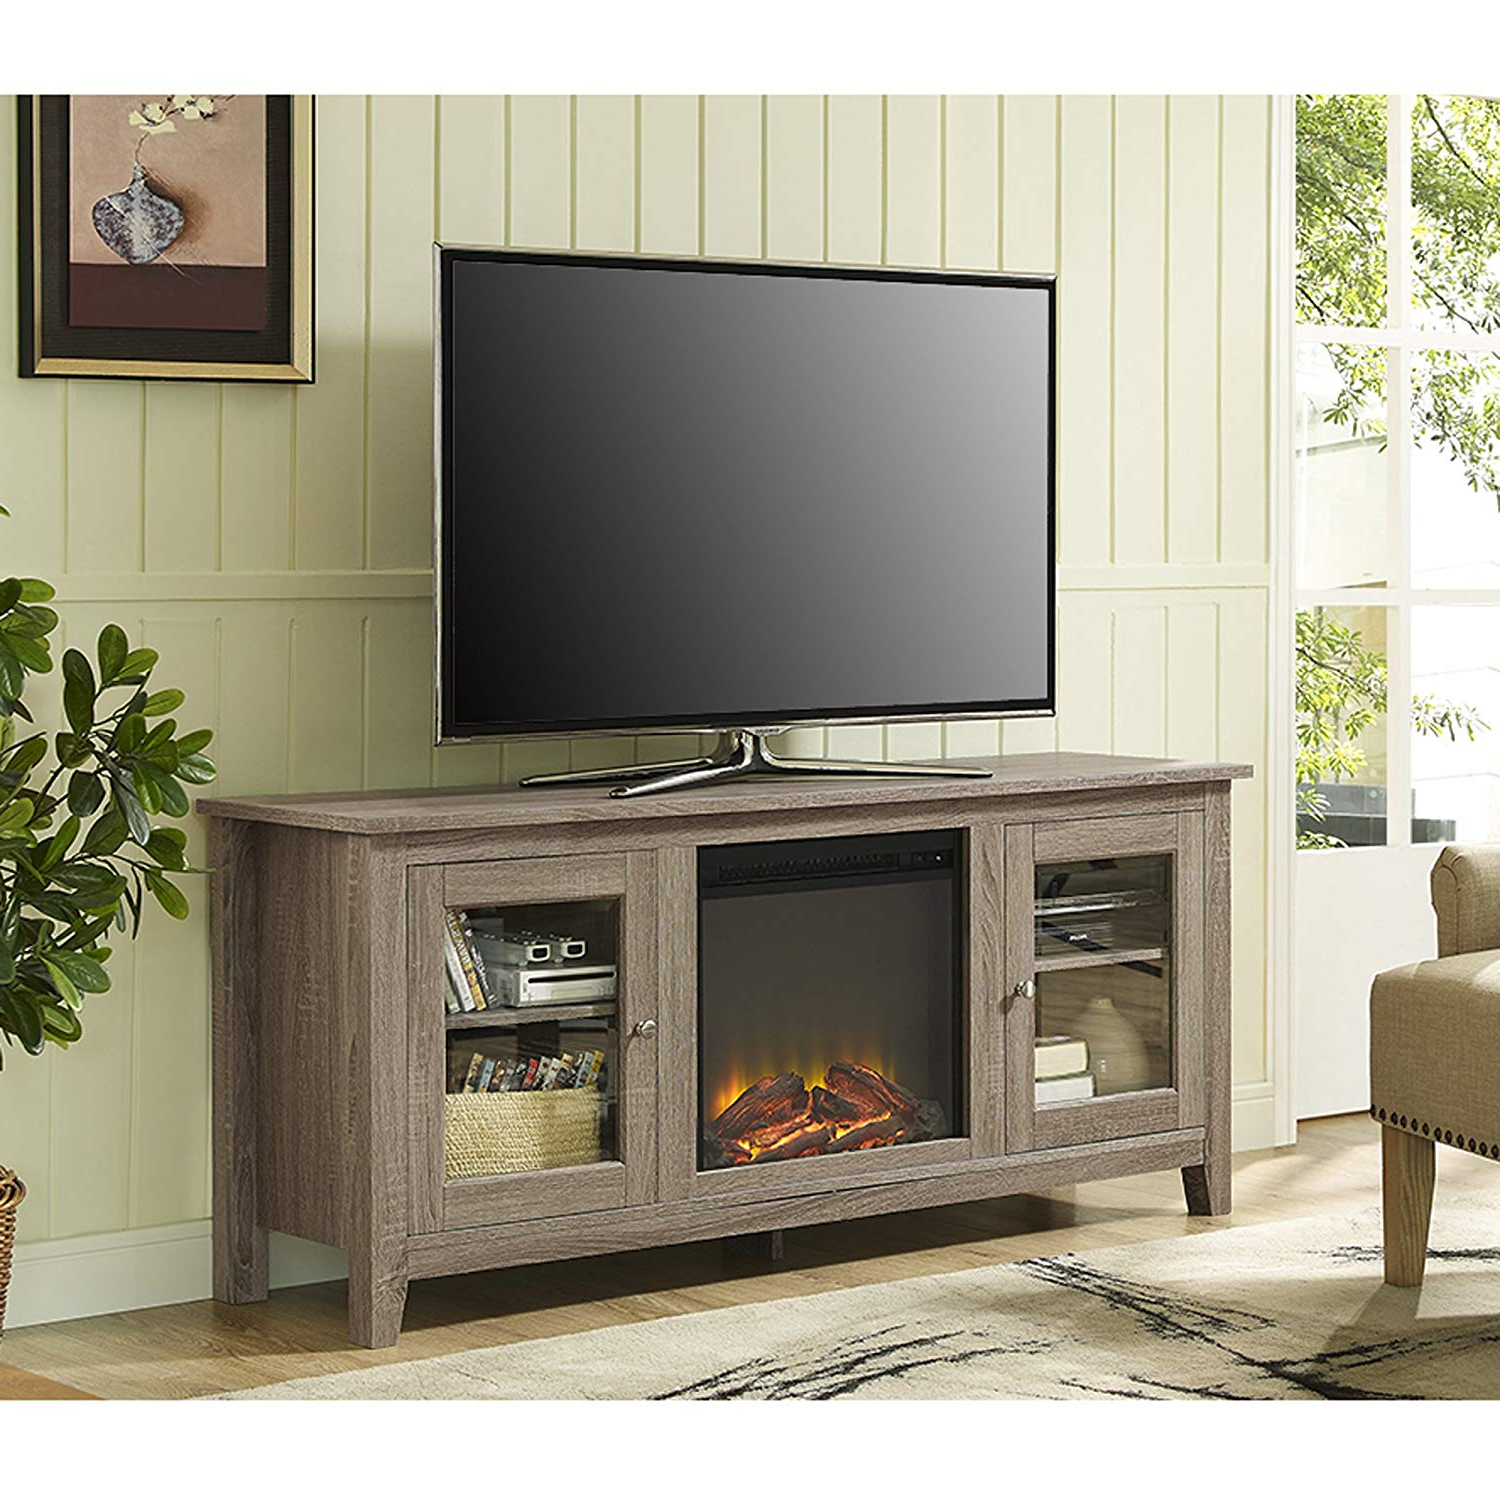 "Most Recent Casey Umber 66 Inch Tv Stands In Amazon: We Furniture 58"" Wood Fireplace Tv Stand Console (View 14 of 20)"